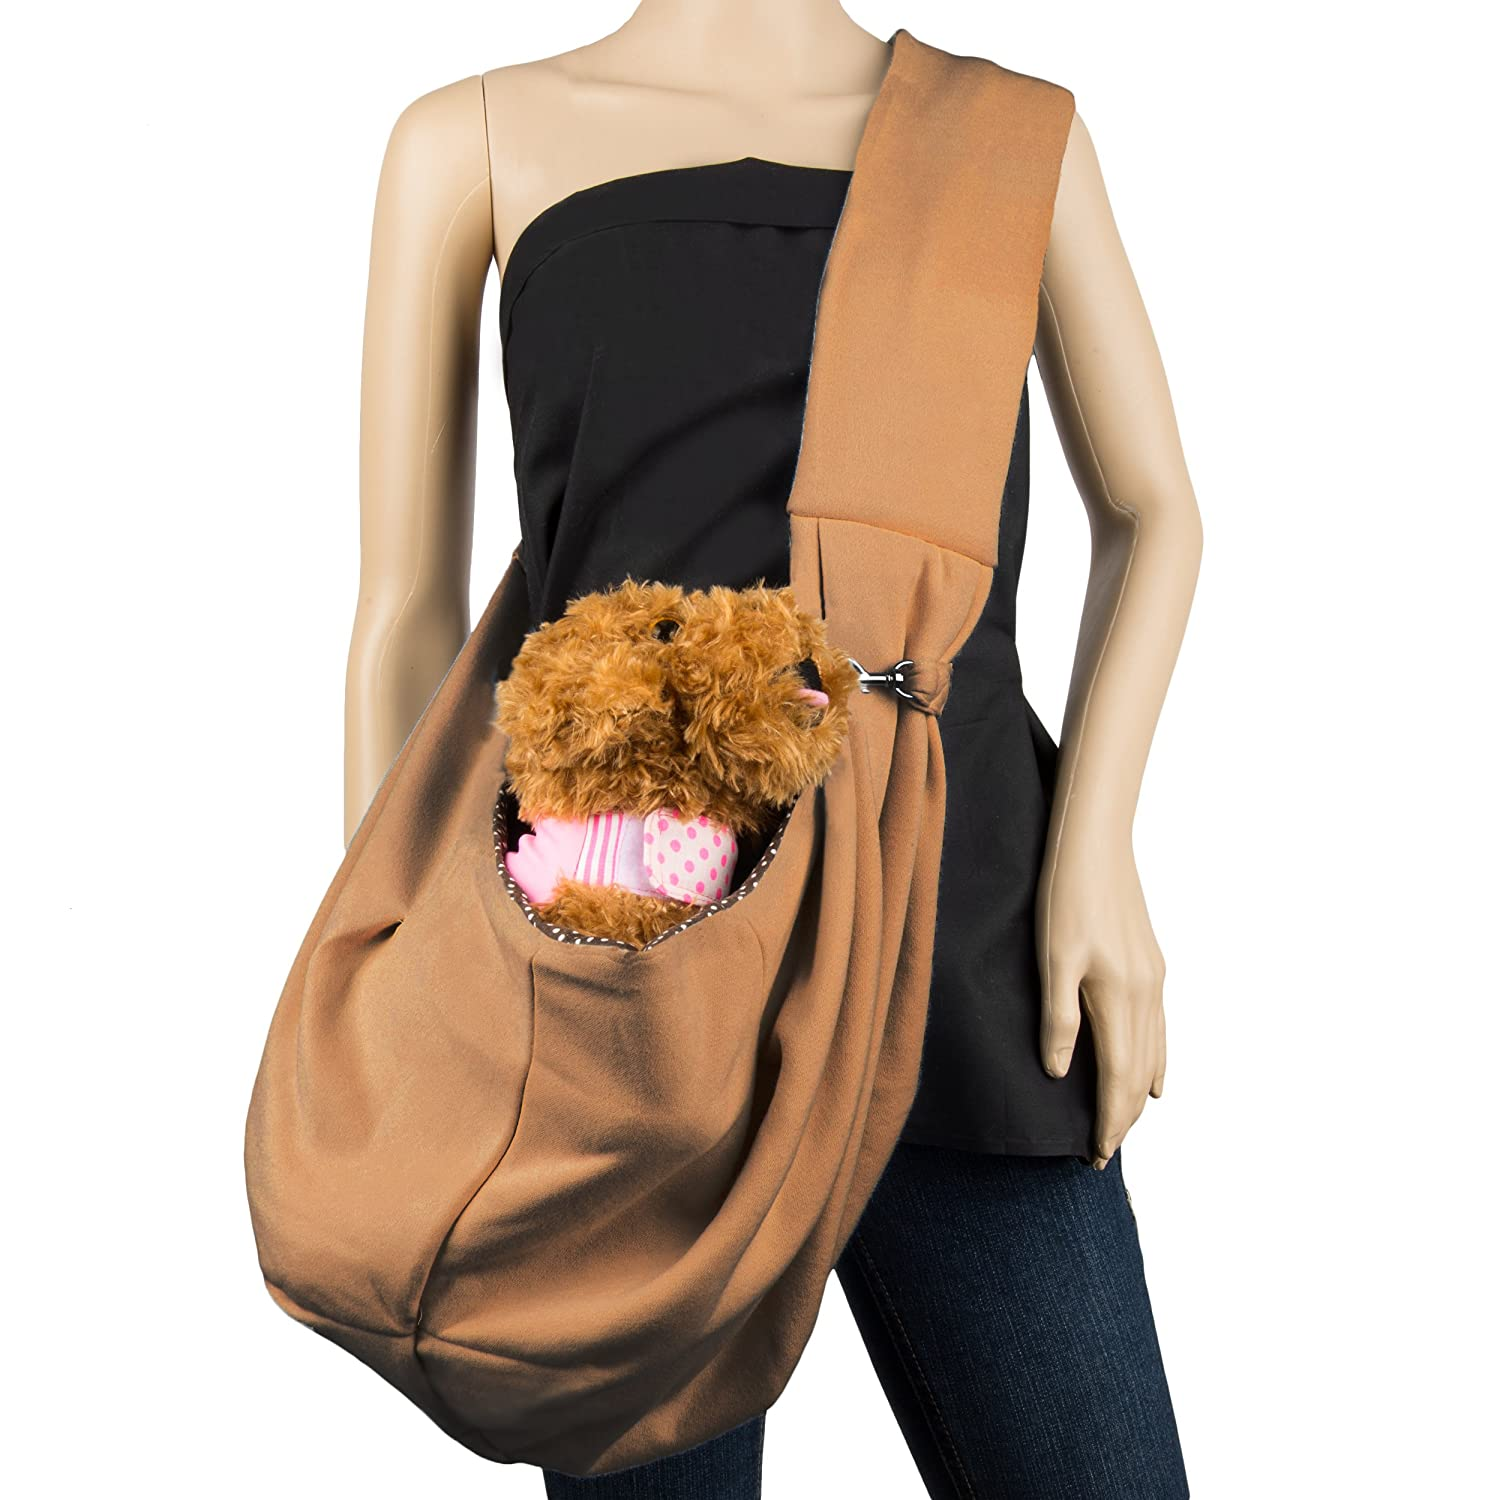 Cue Cue Pet's 100% Plush Cotton Reversible Pet Sling Carrier Suitable for Small to Medium Sized Dogs, Cats, Rabbits, Pet's Pet' s